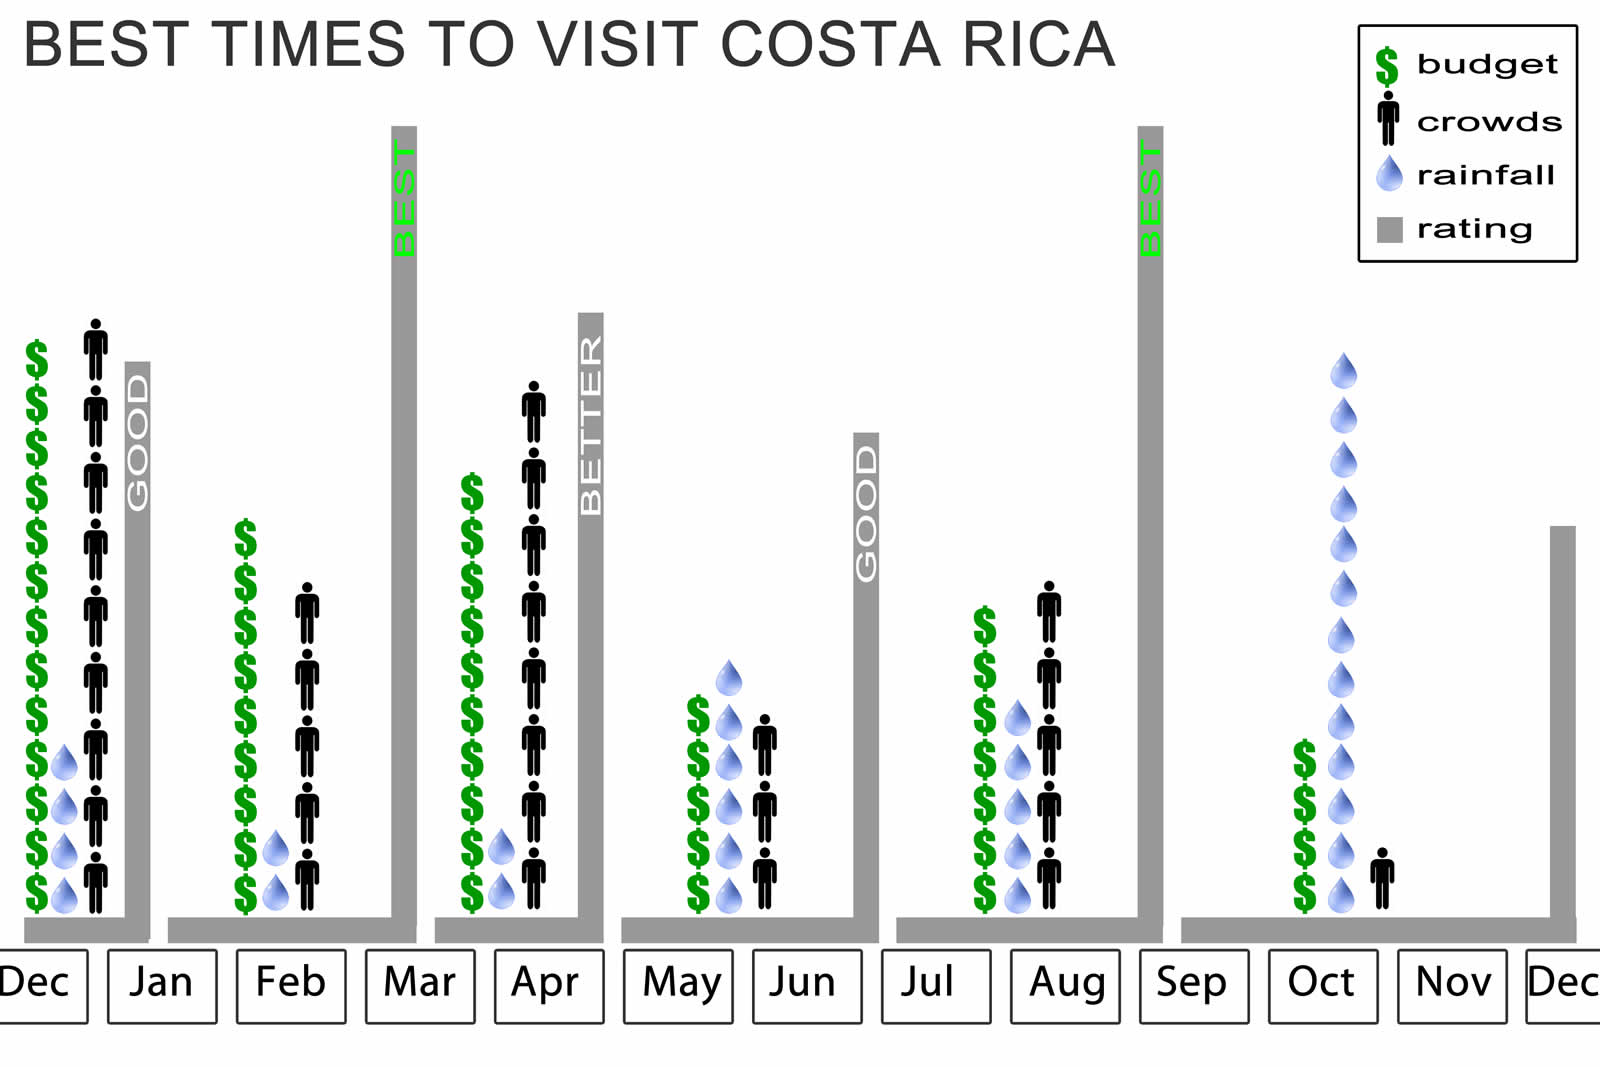 Best time to visit COsta Rica chart